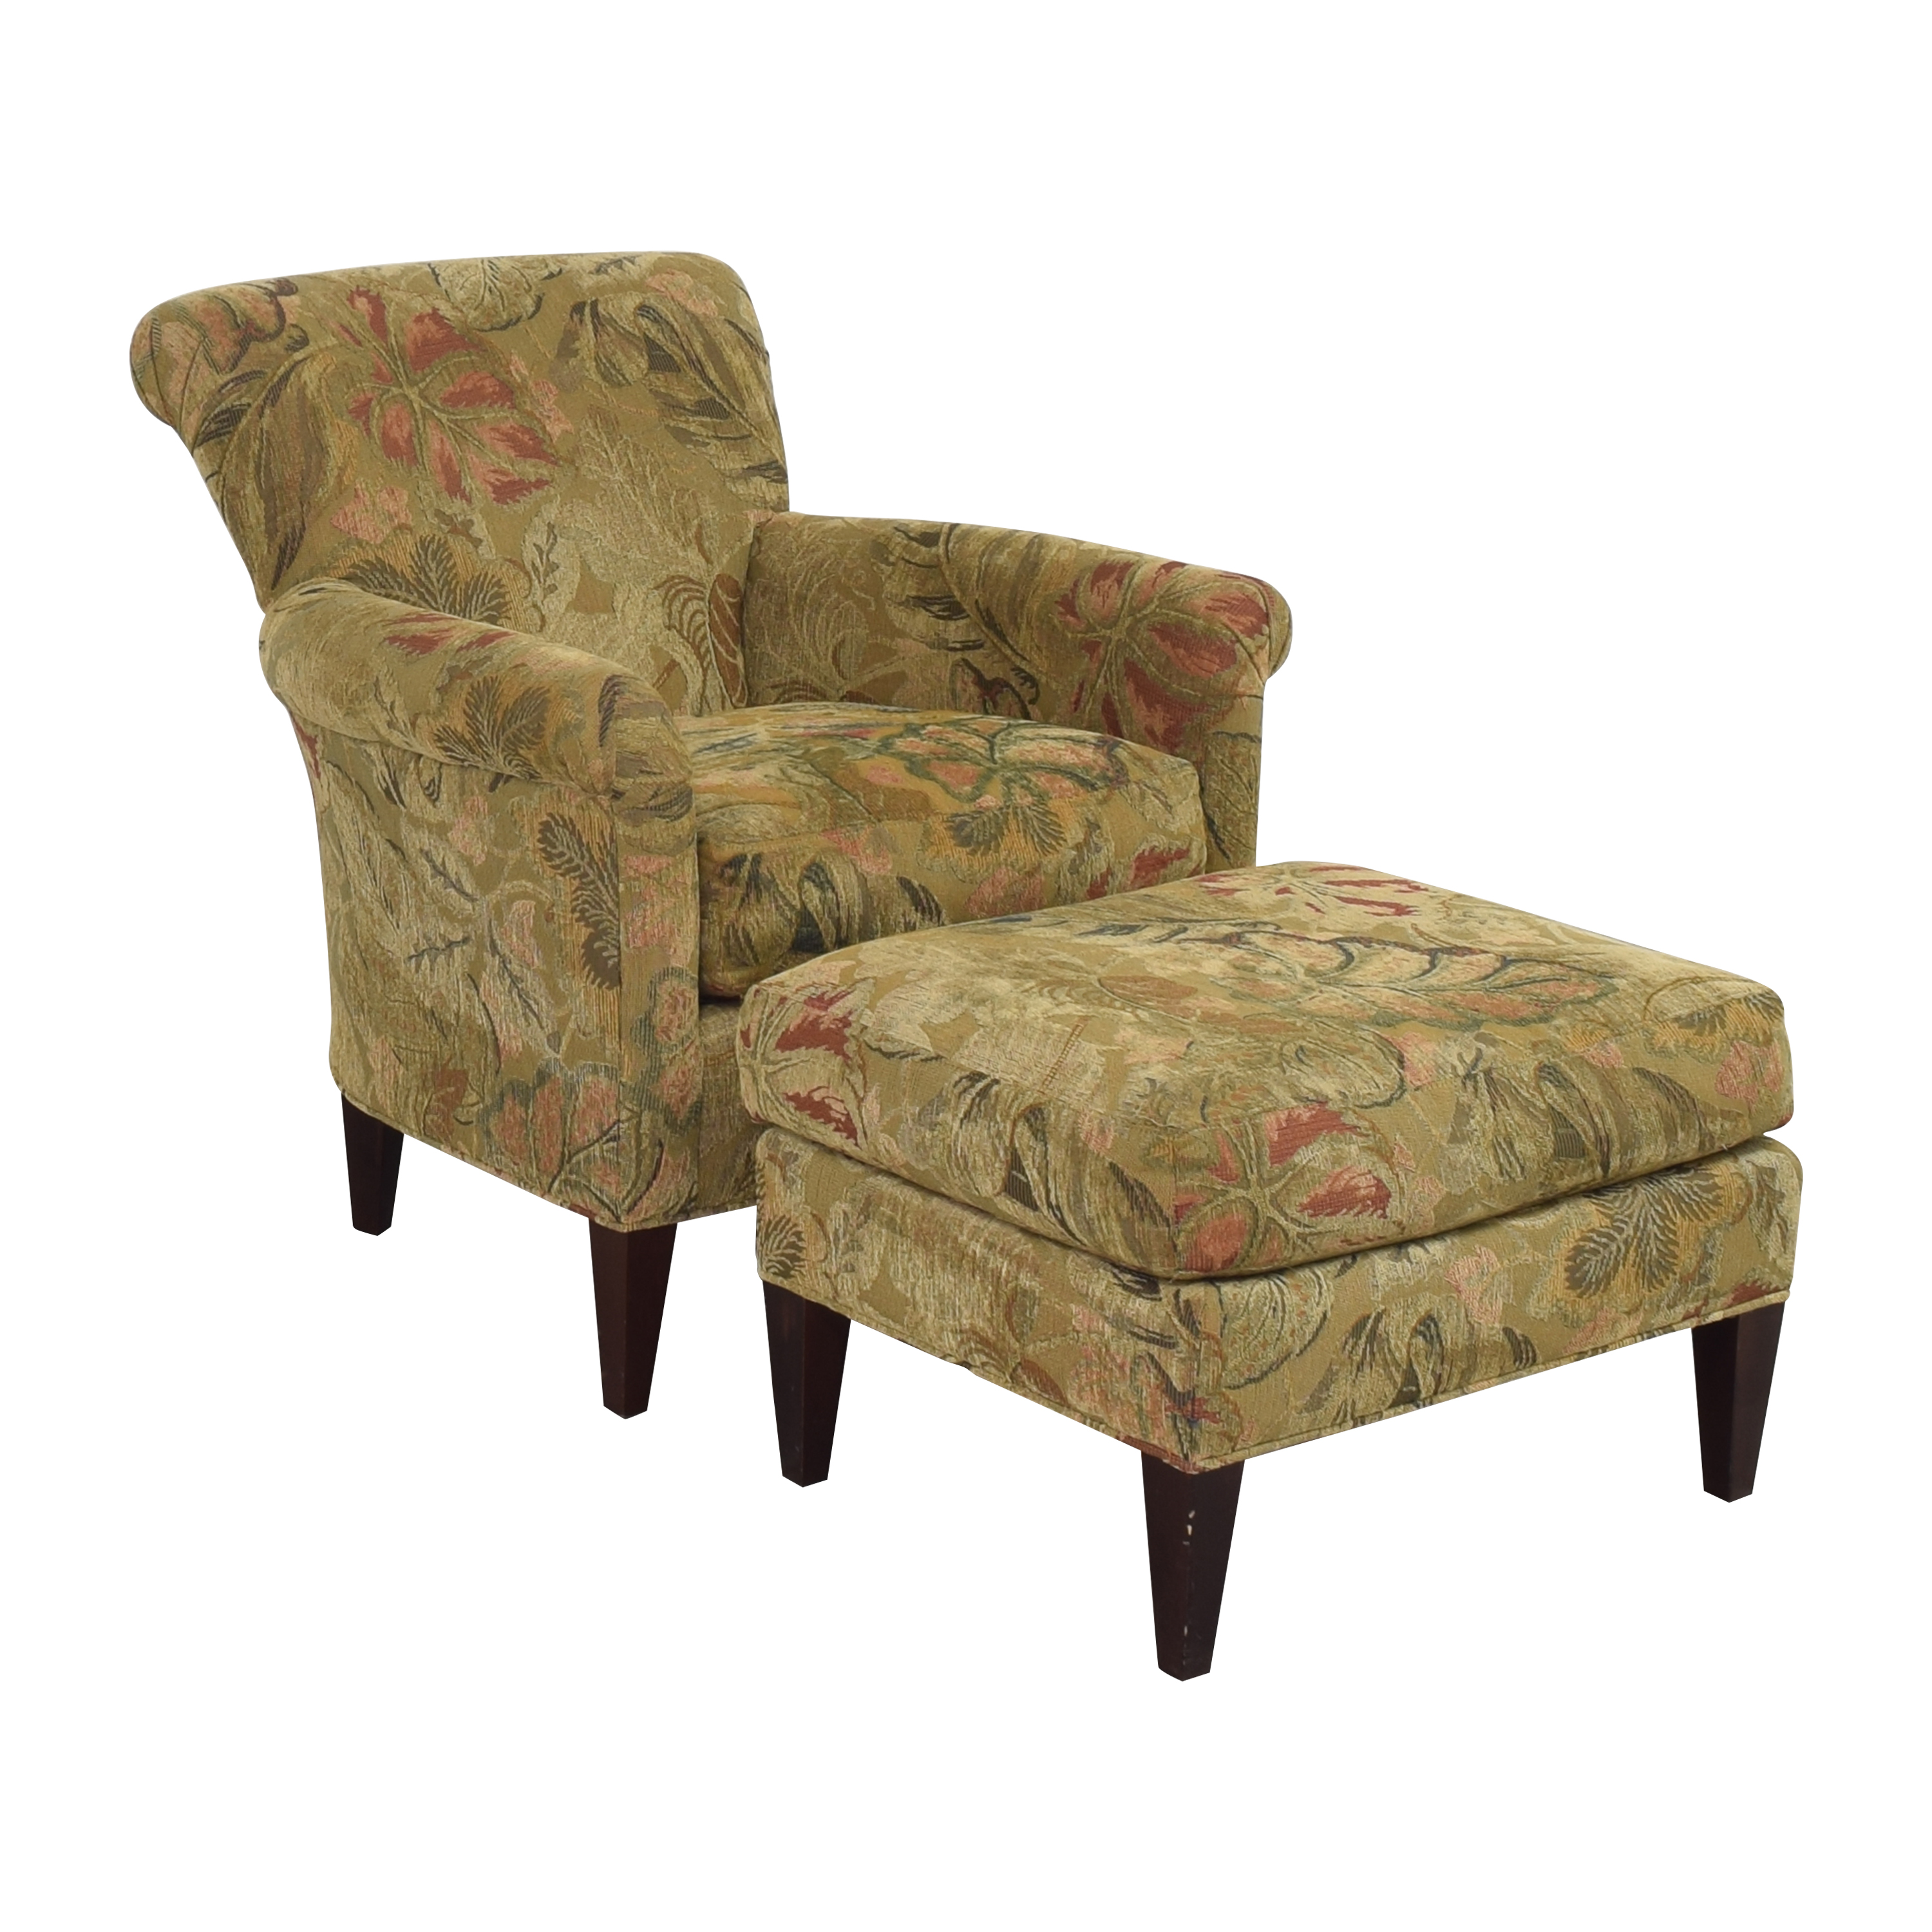 Crate & Barrel Crate & Barrel Accent Chair with Ottoman Accent Chairs